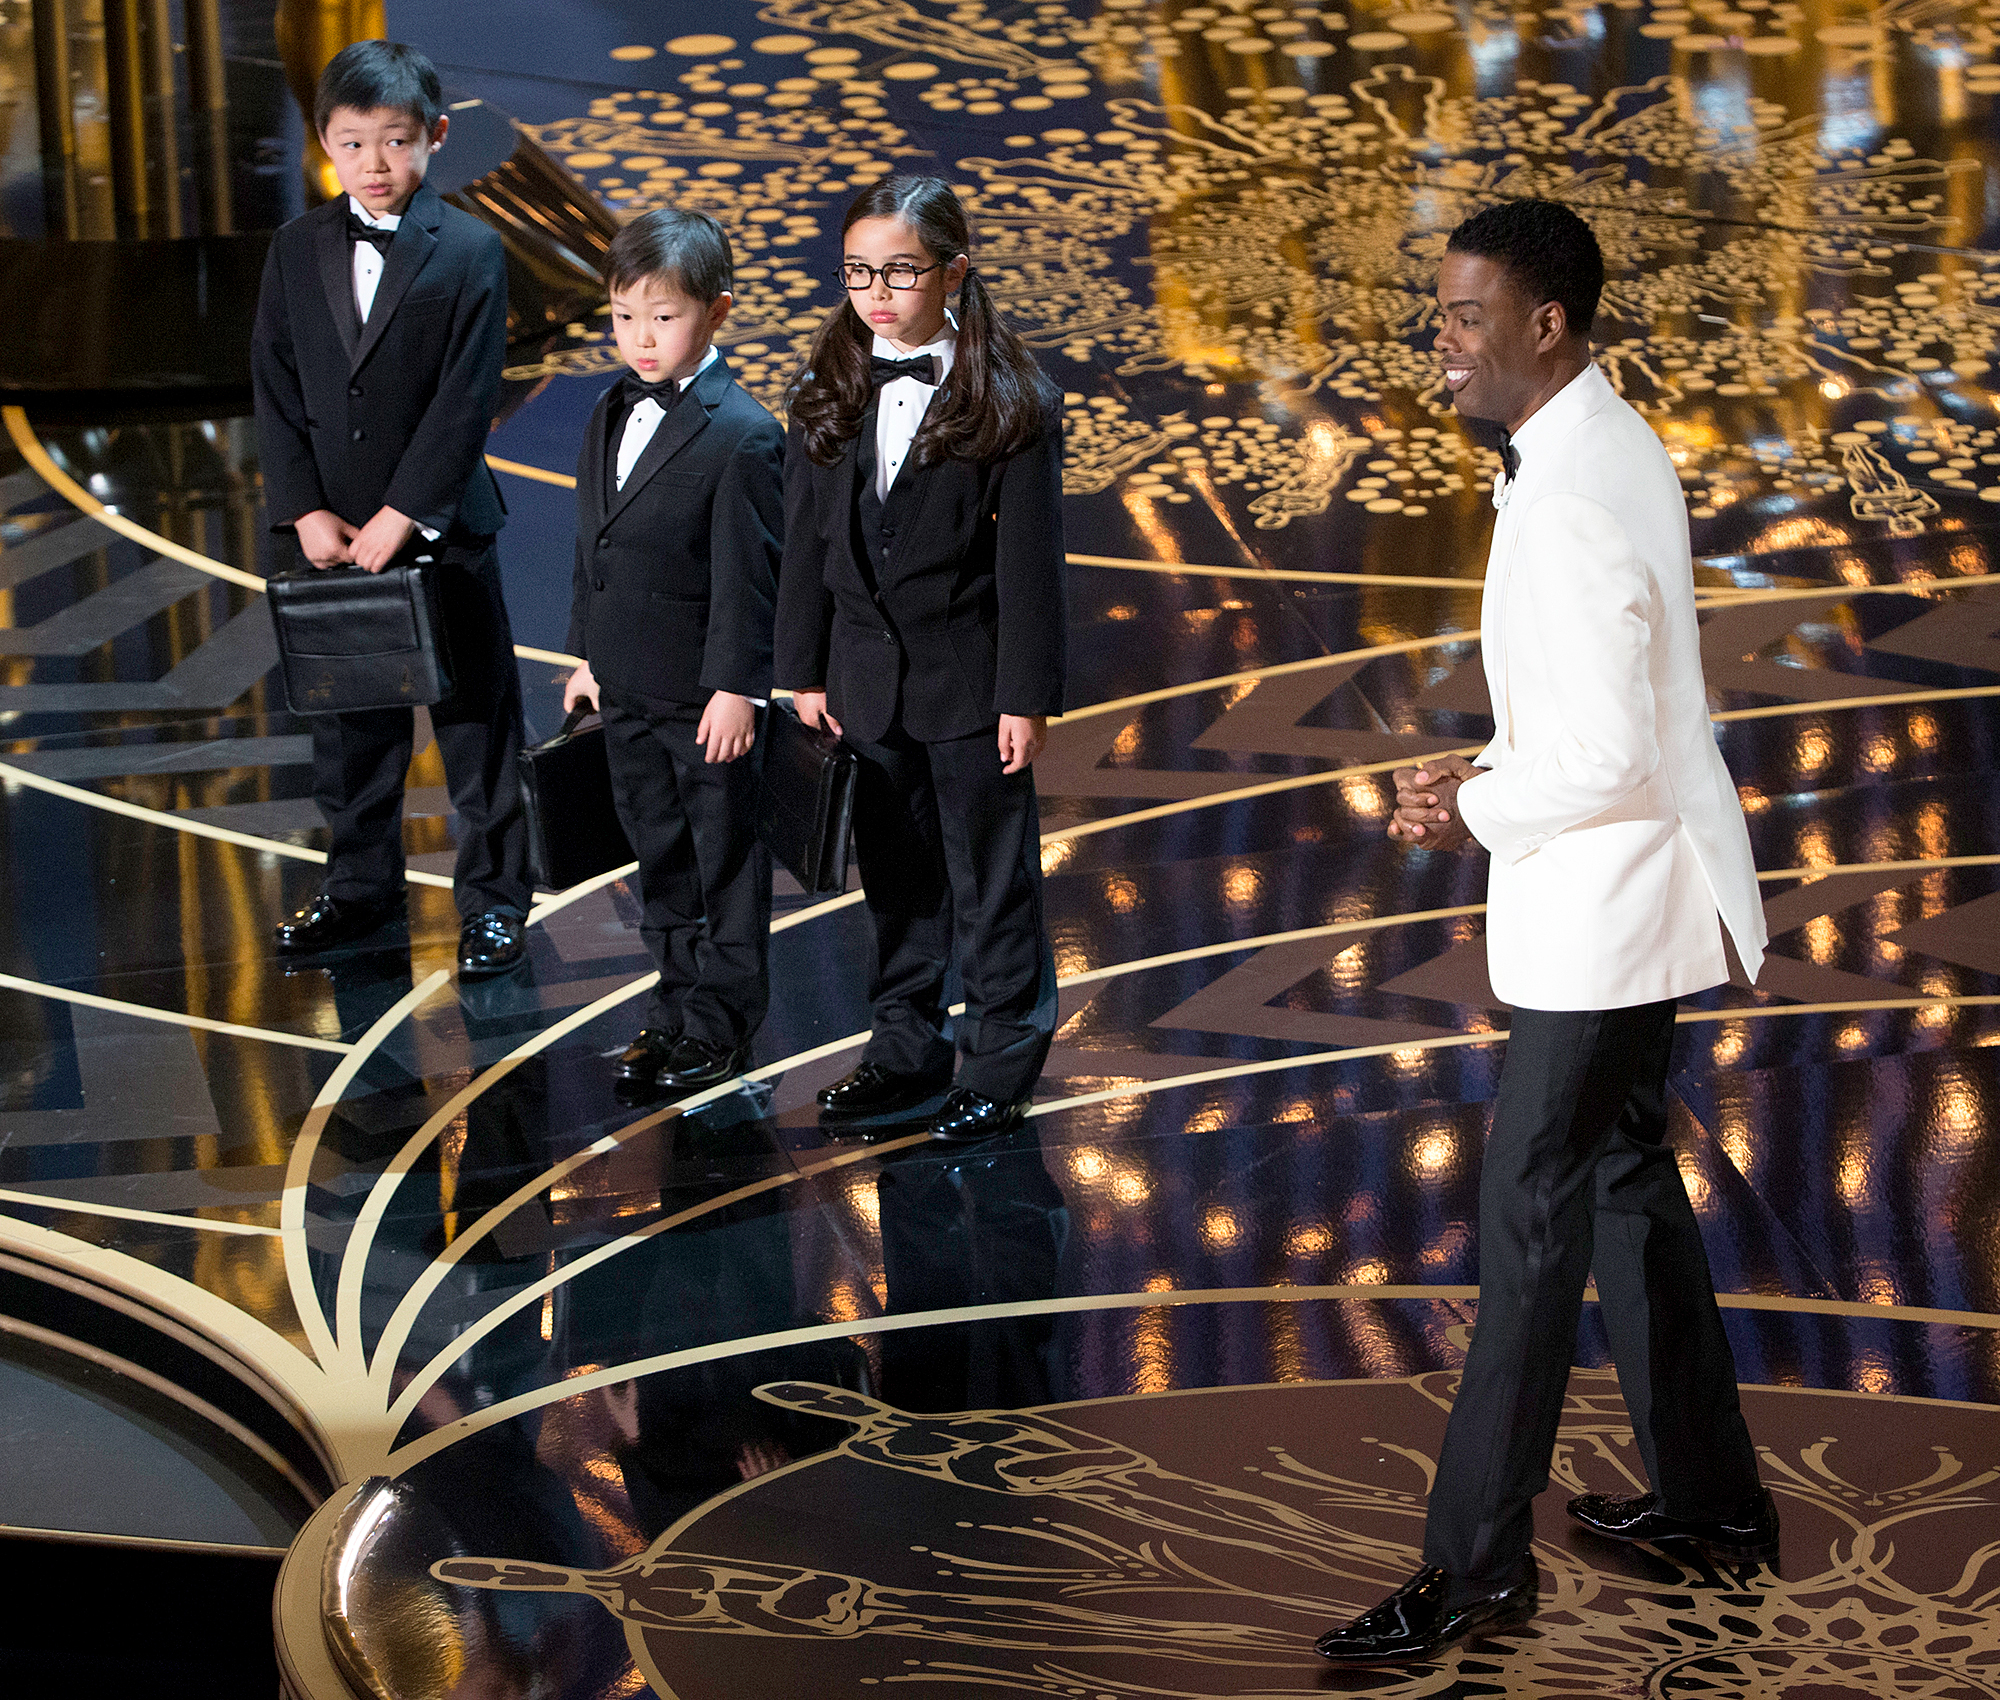 Chris Rock and PricewaterhouseCoopers